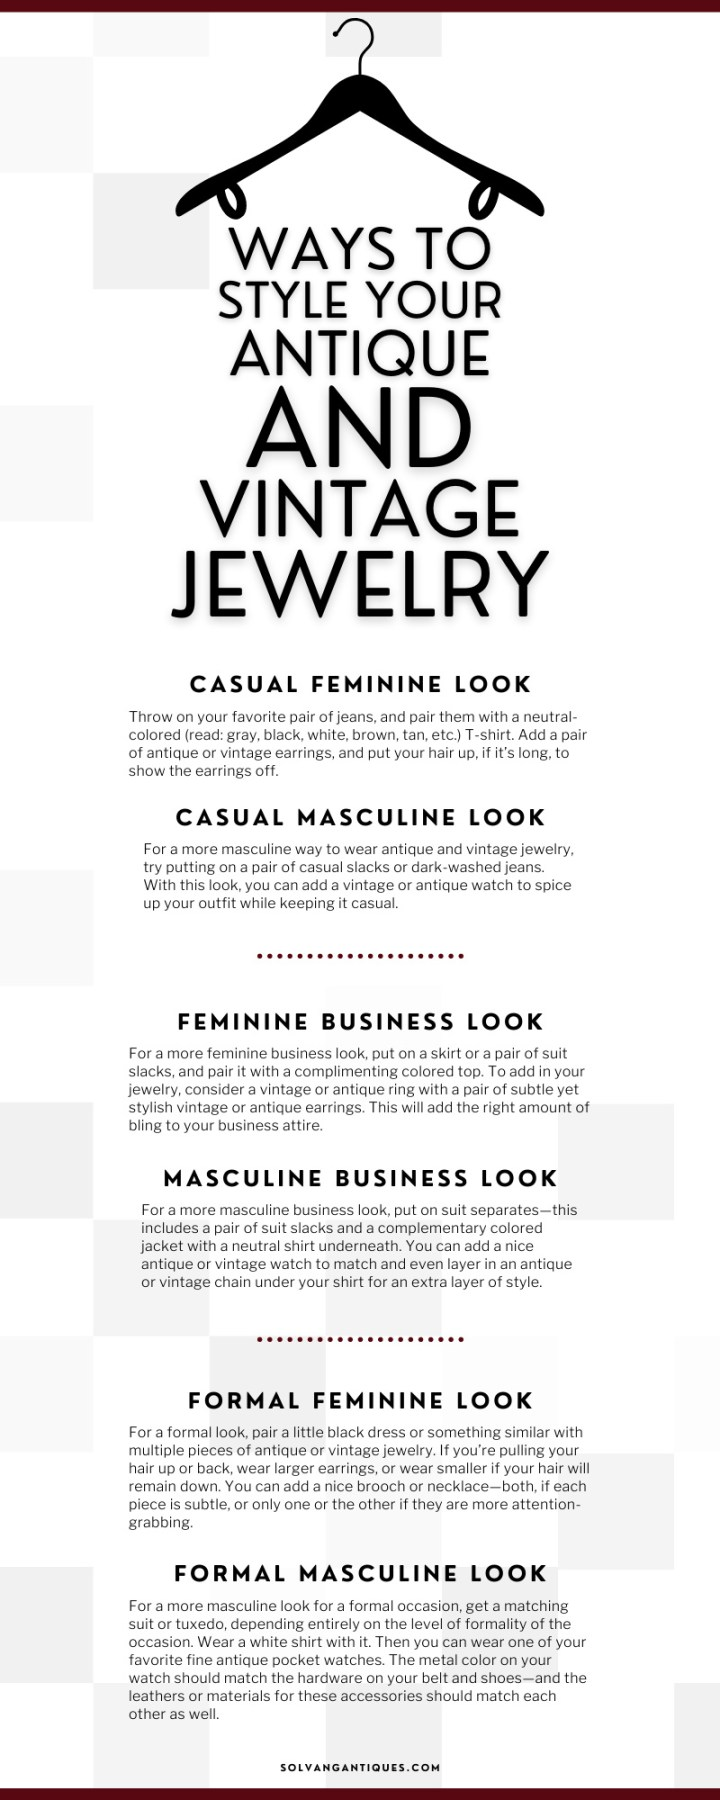 Style Your Antique and Vintage Jewelry